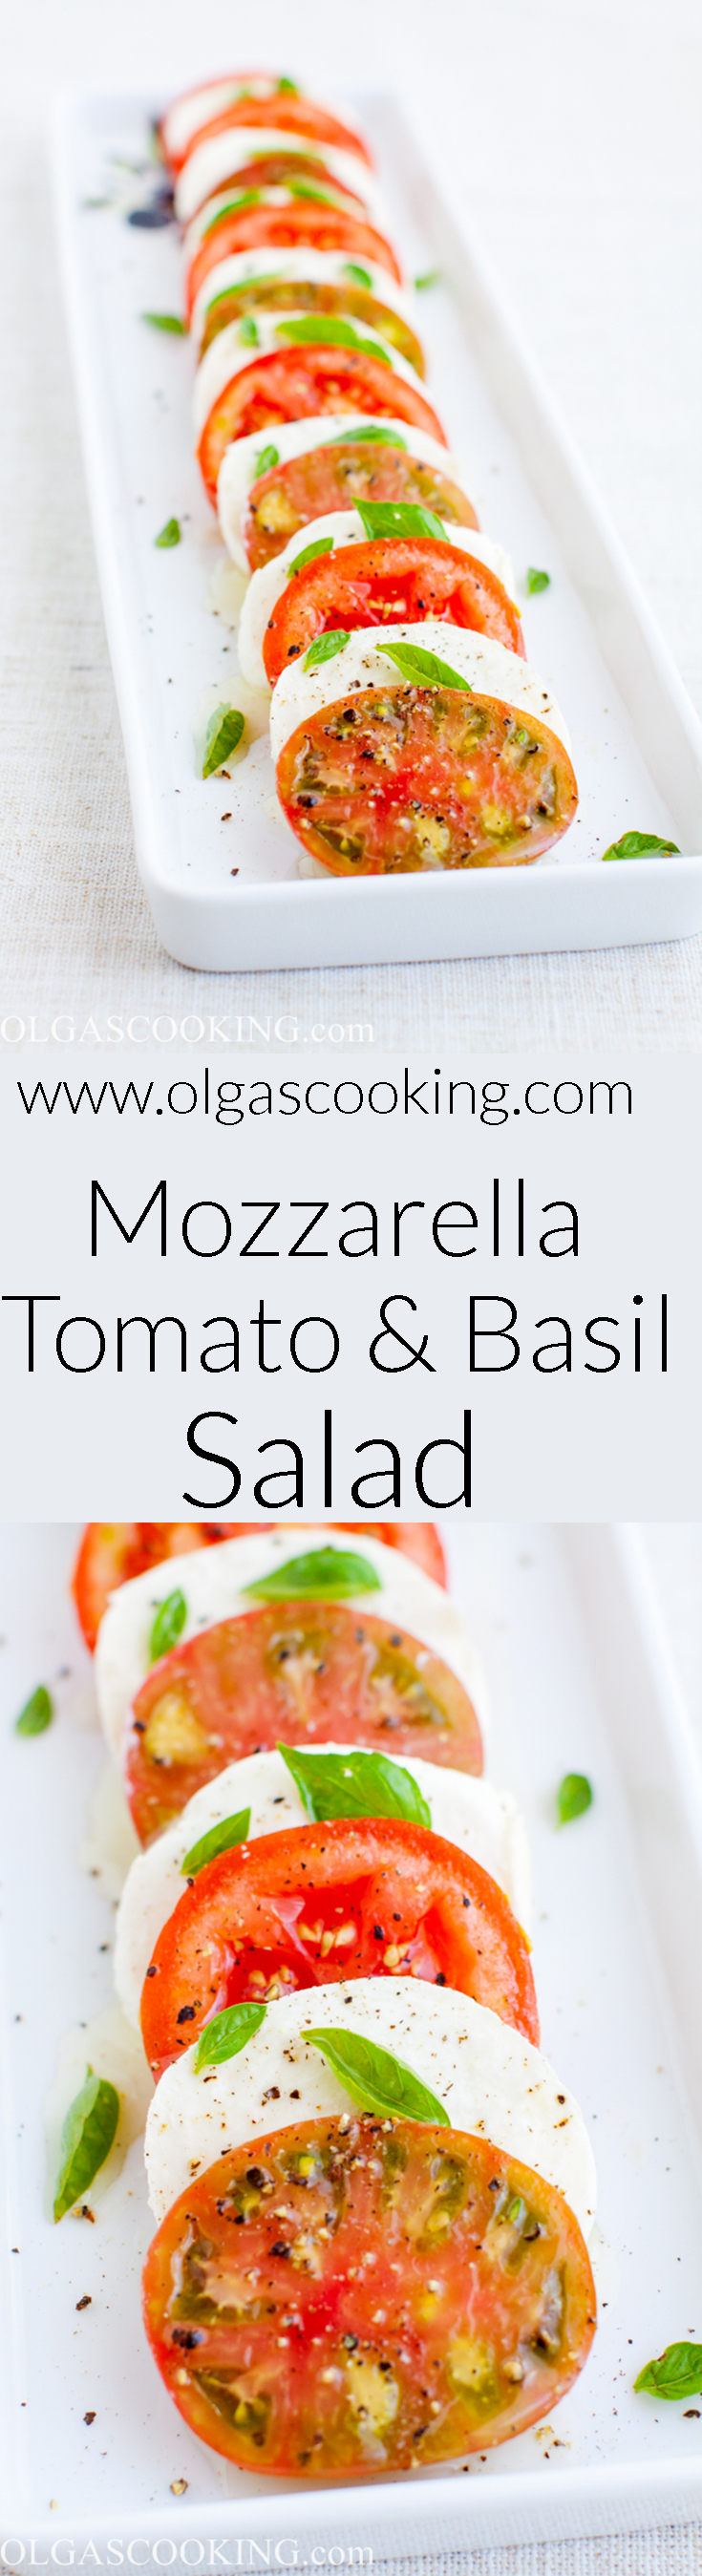 Mozzarella, Tomato and Basil Salad